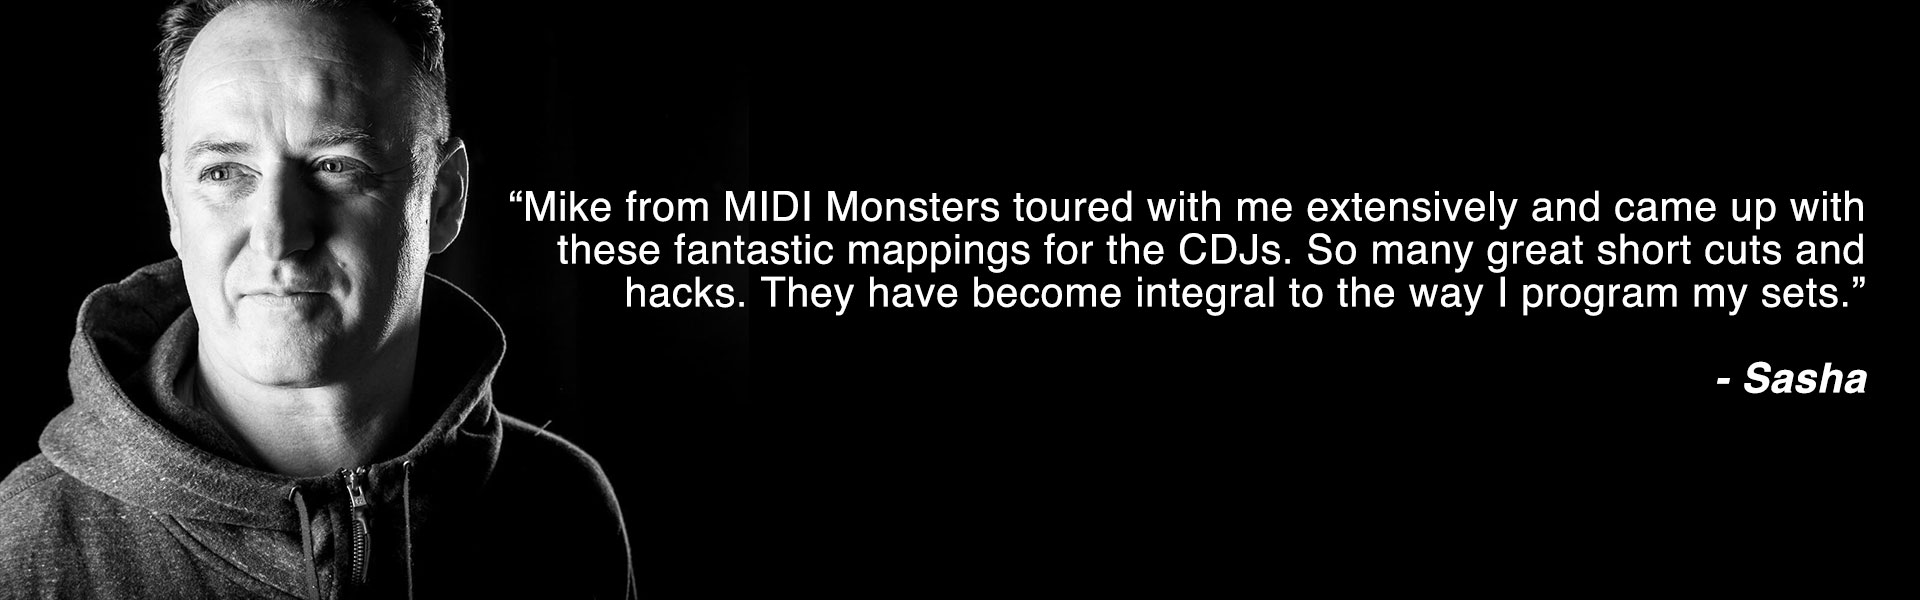 Professional Midi Mappings - MIDI Monsters